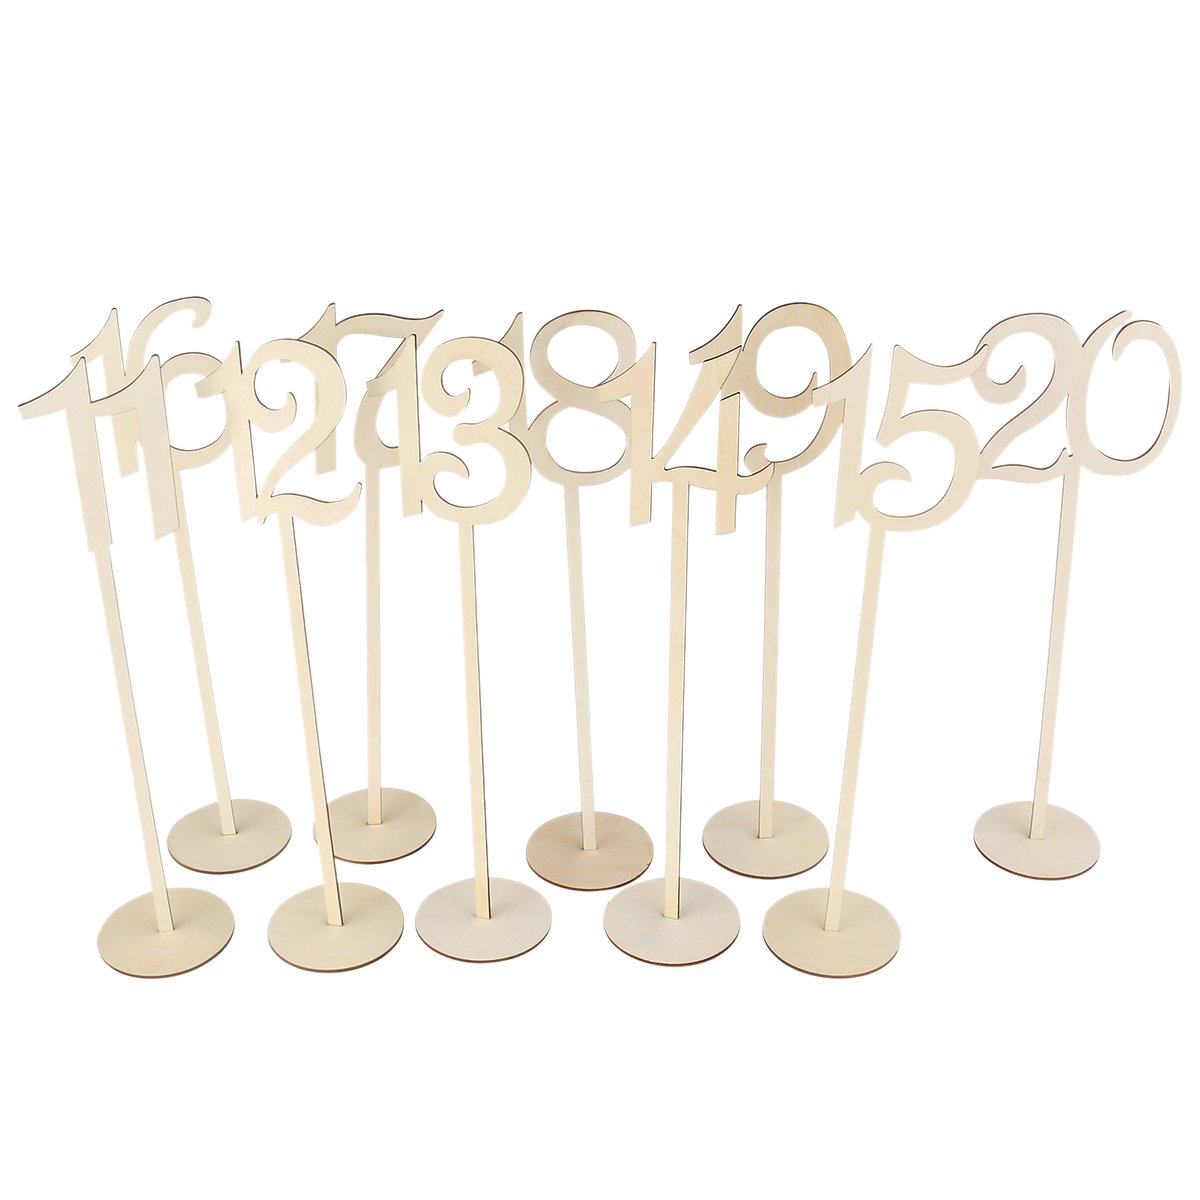 Pixnor 1 to 20 Wooden Table Numbers with Holder Base for Wedding Party Decoration Pack of 20 by PIXNOR (Image #3)